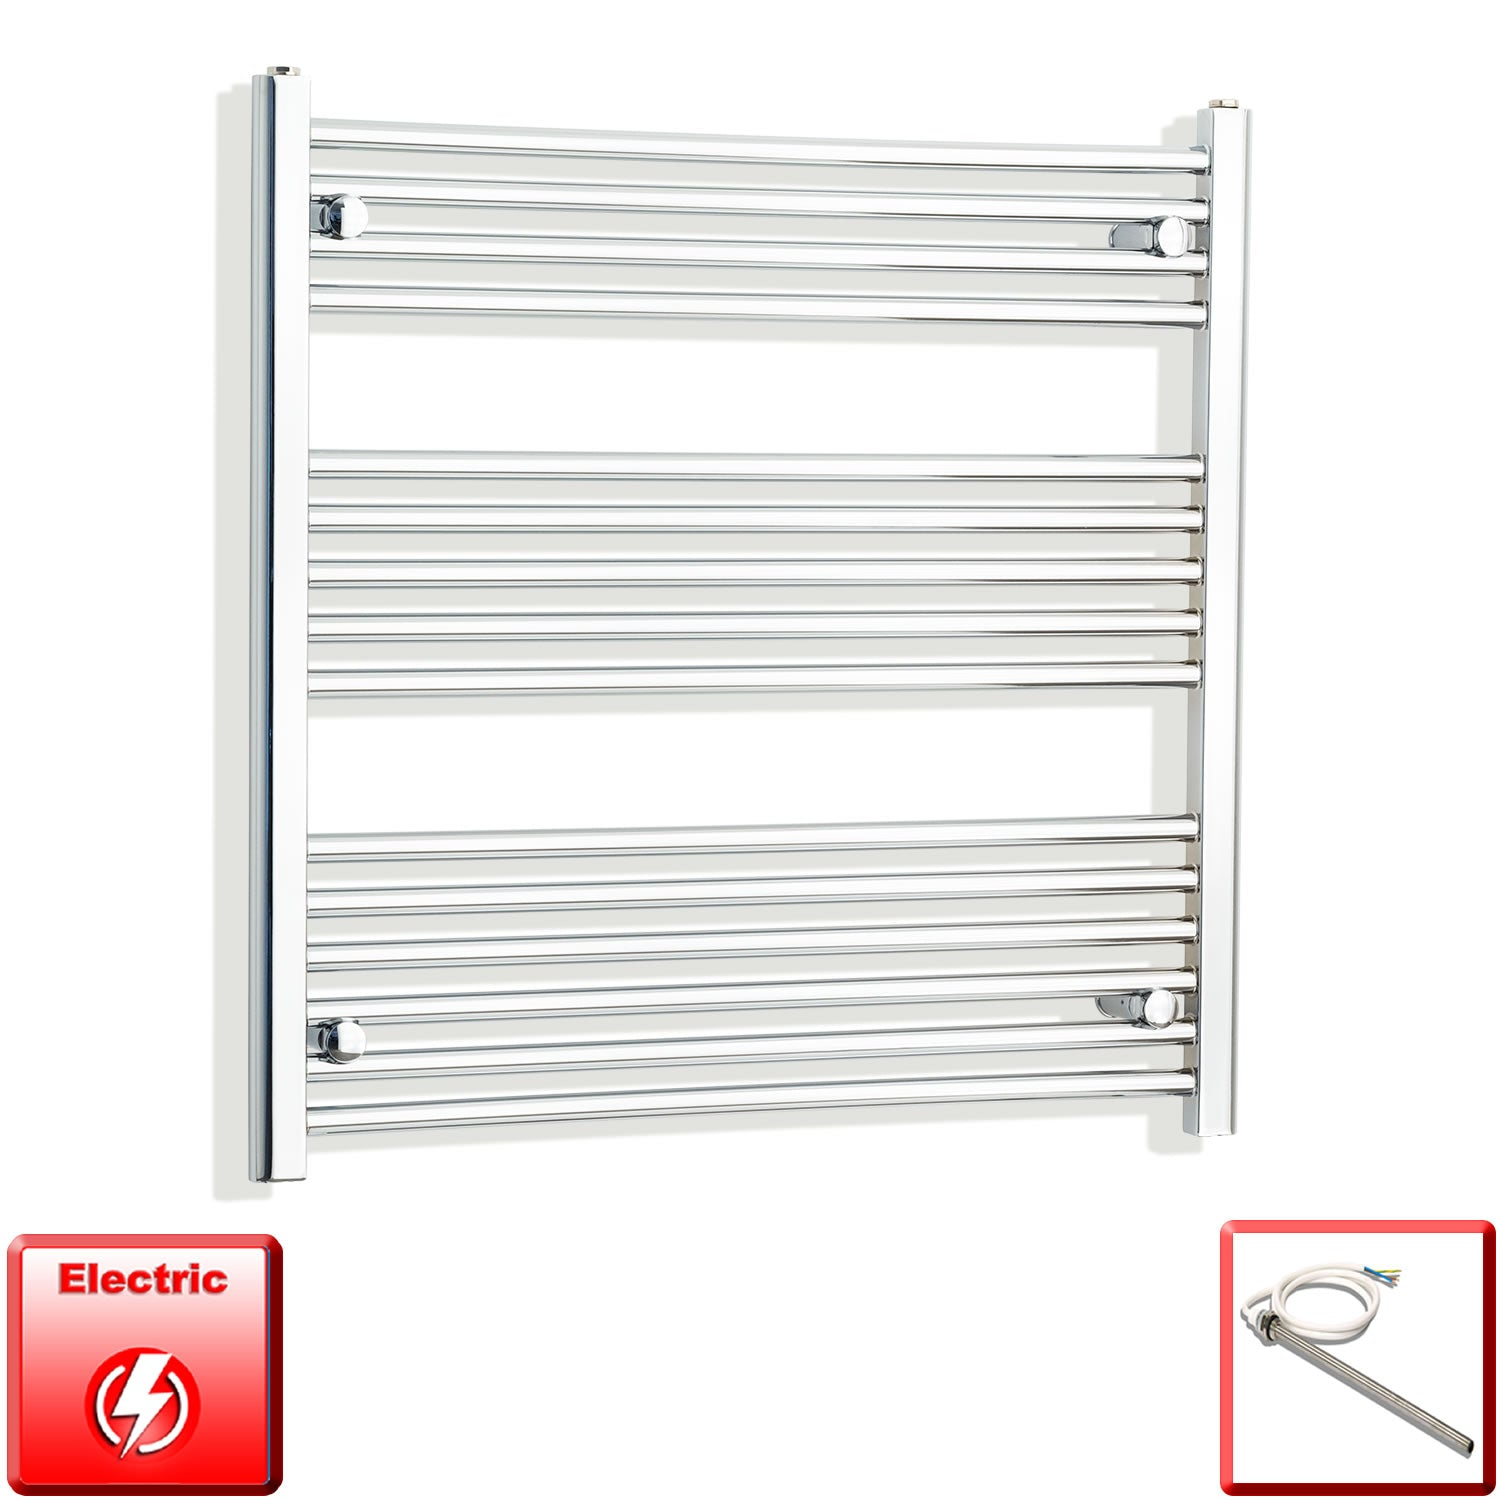 800mm High 750mm Wide Pre-Filled Electric Heated Towel Rail Radiator Curved or Straight Chrome